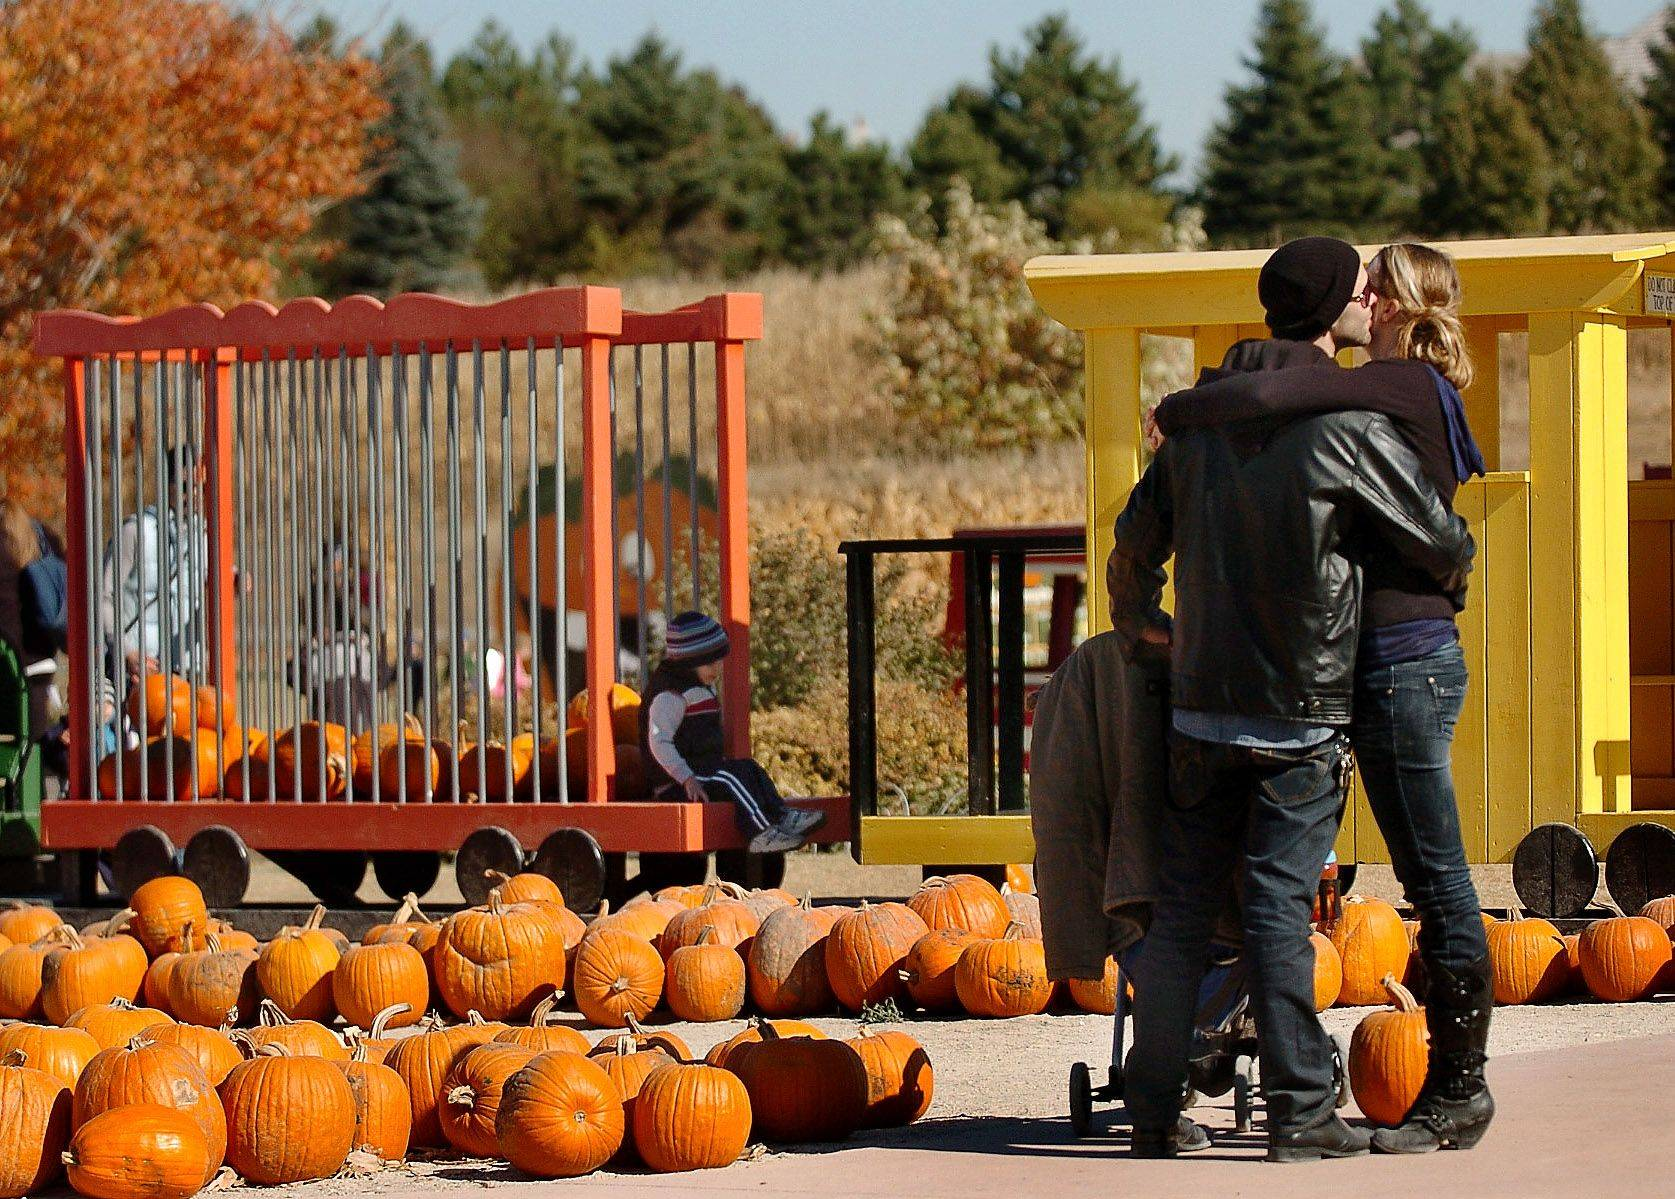 Eric and Shanna Leezer of Rockford enjoy an affectionate moment at Goebberts Pumpkin Farm in South Barrington.